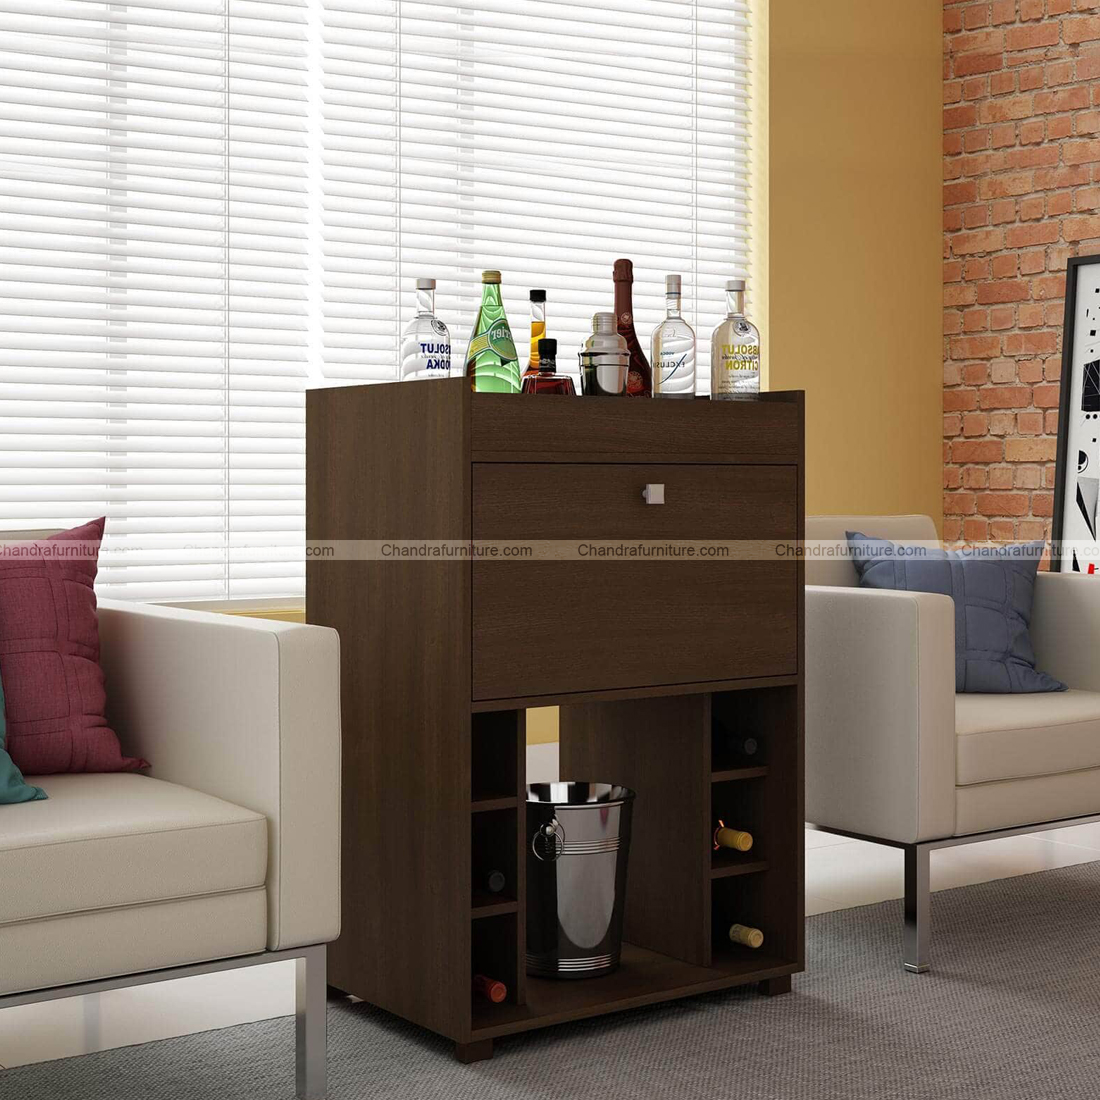 Chandra Furniture Shochu Bar Cabinet With Bottle Holder In Brown Finish